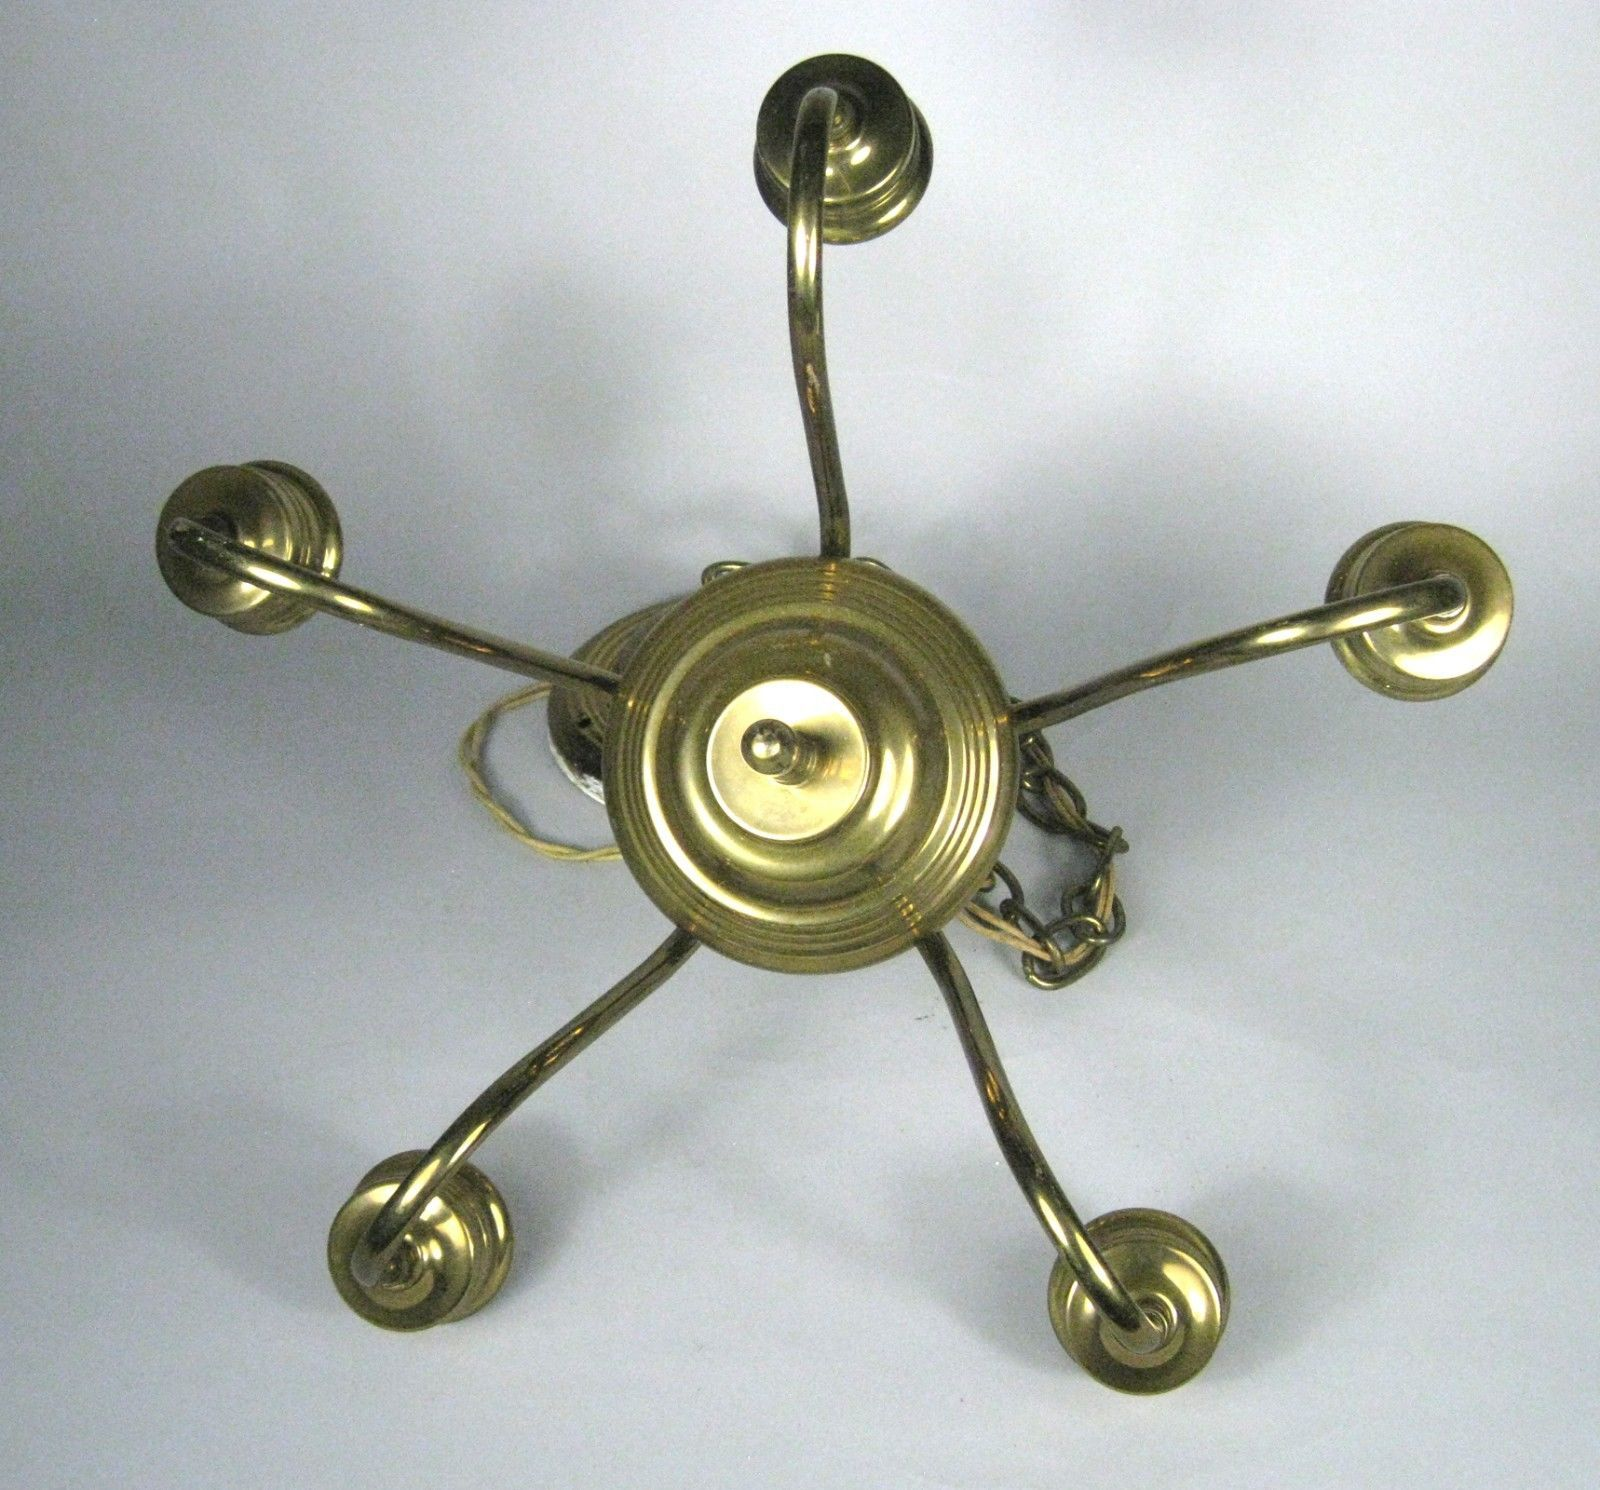 Chandelier Ceiling Light Fixture Brass 5 Arm Bulbs 2 Tier 1 Ceiling Rose Union